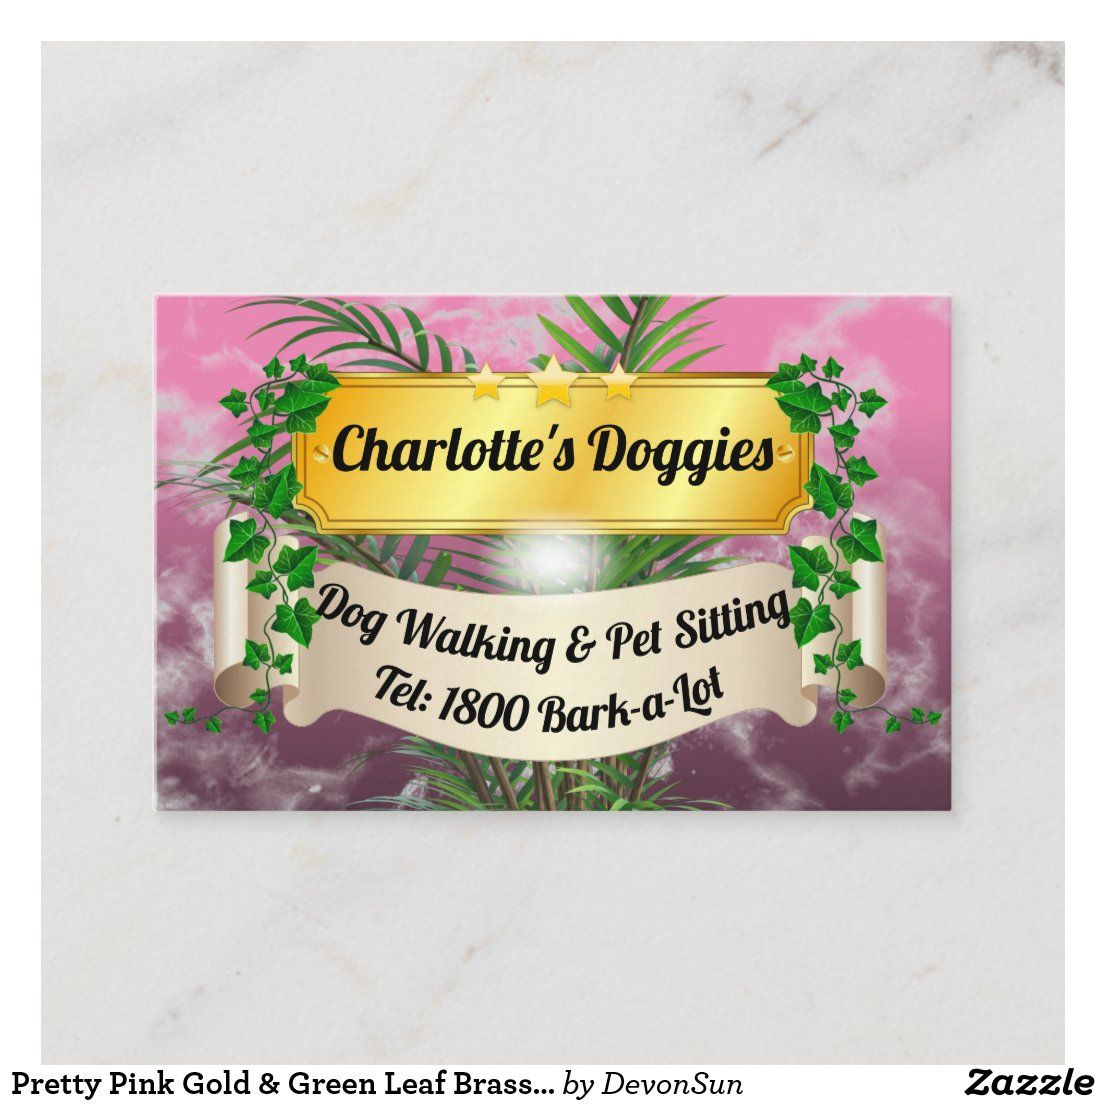 Pretty Pink Gold & Green Leaf Brass Plaque Business Card